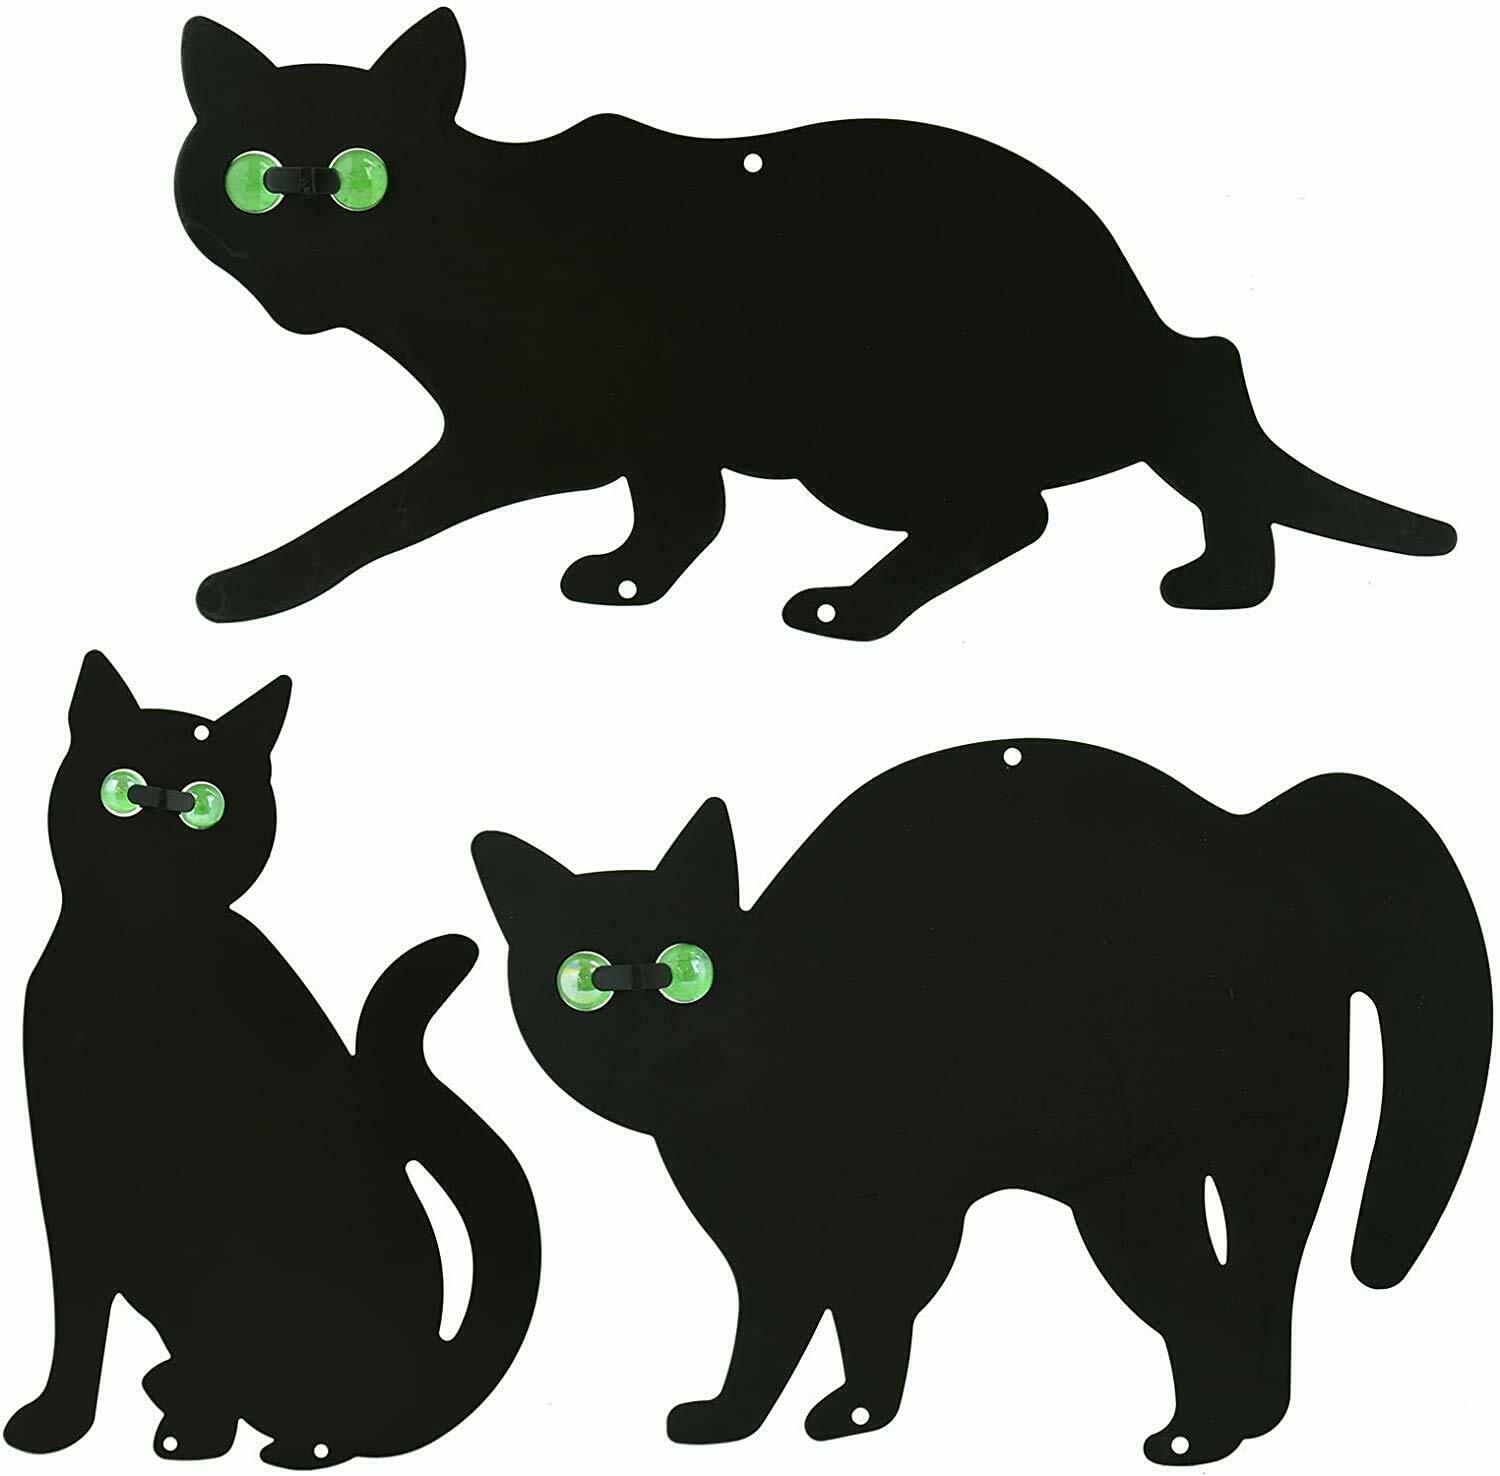 3Pack Black Cat Silhouette for Garden - Cats Scarer with Marble Eyes - Harmless